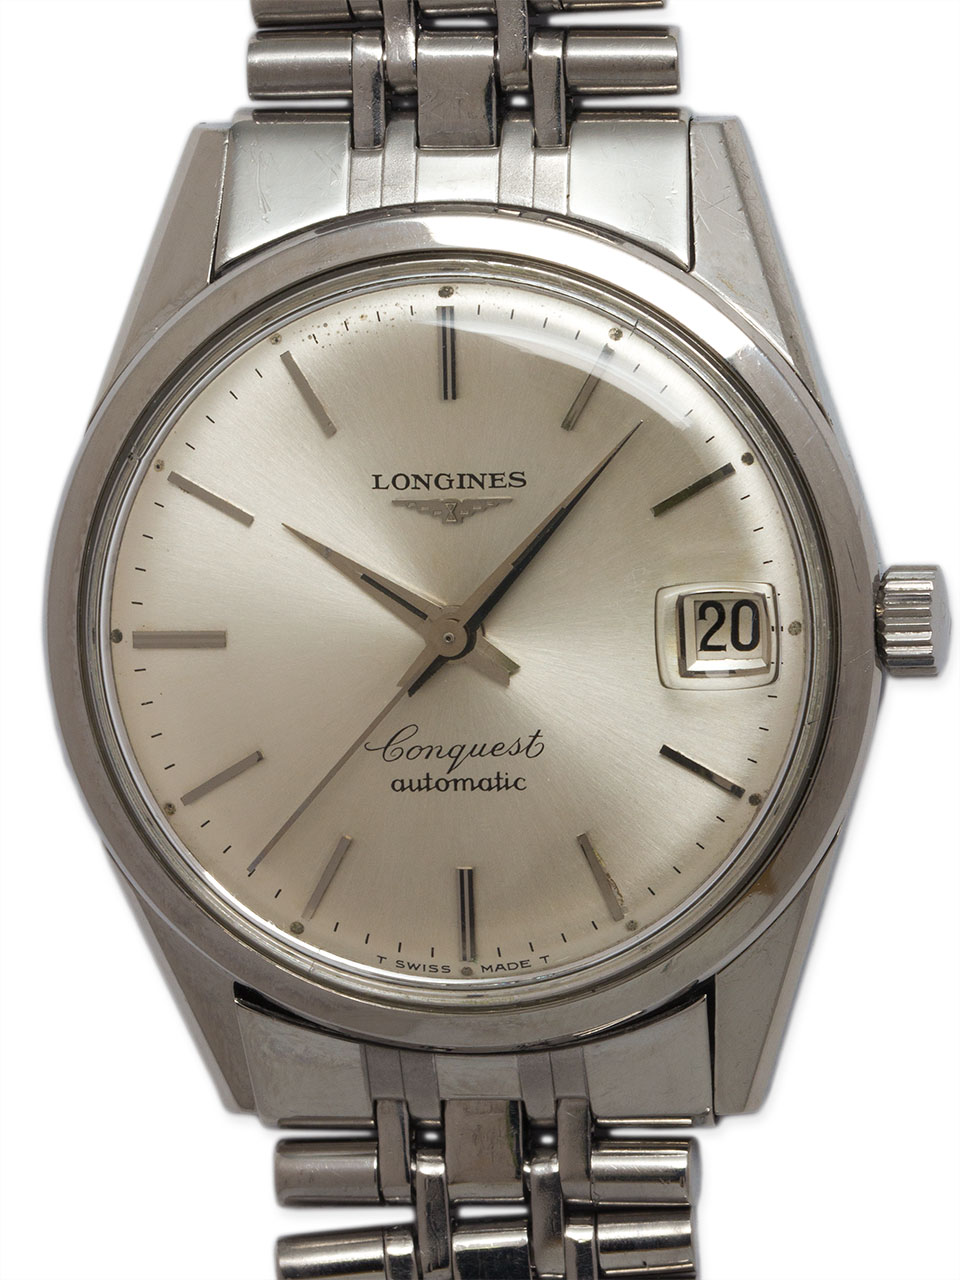 Longines Conquest Automatic Stainless Steel circa late 1960's